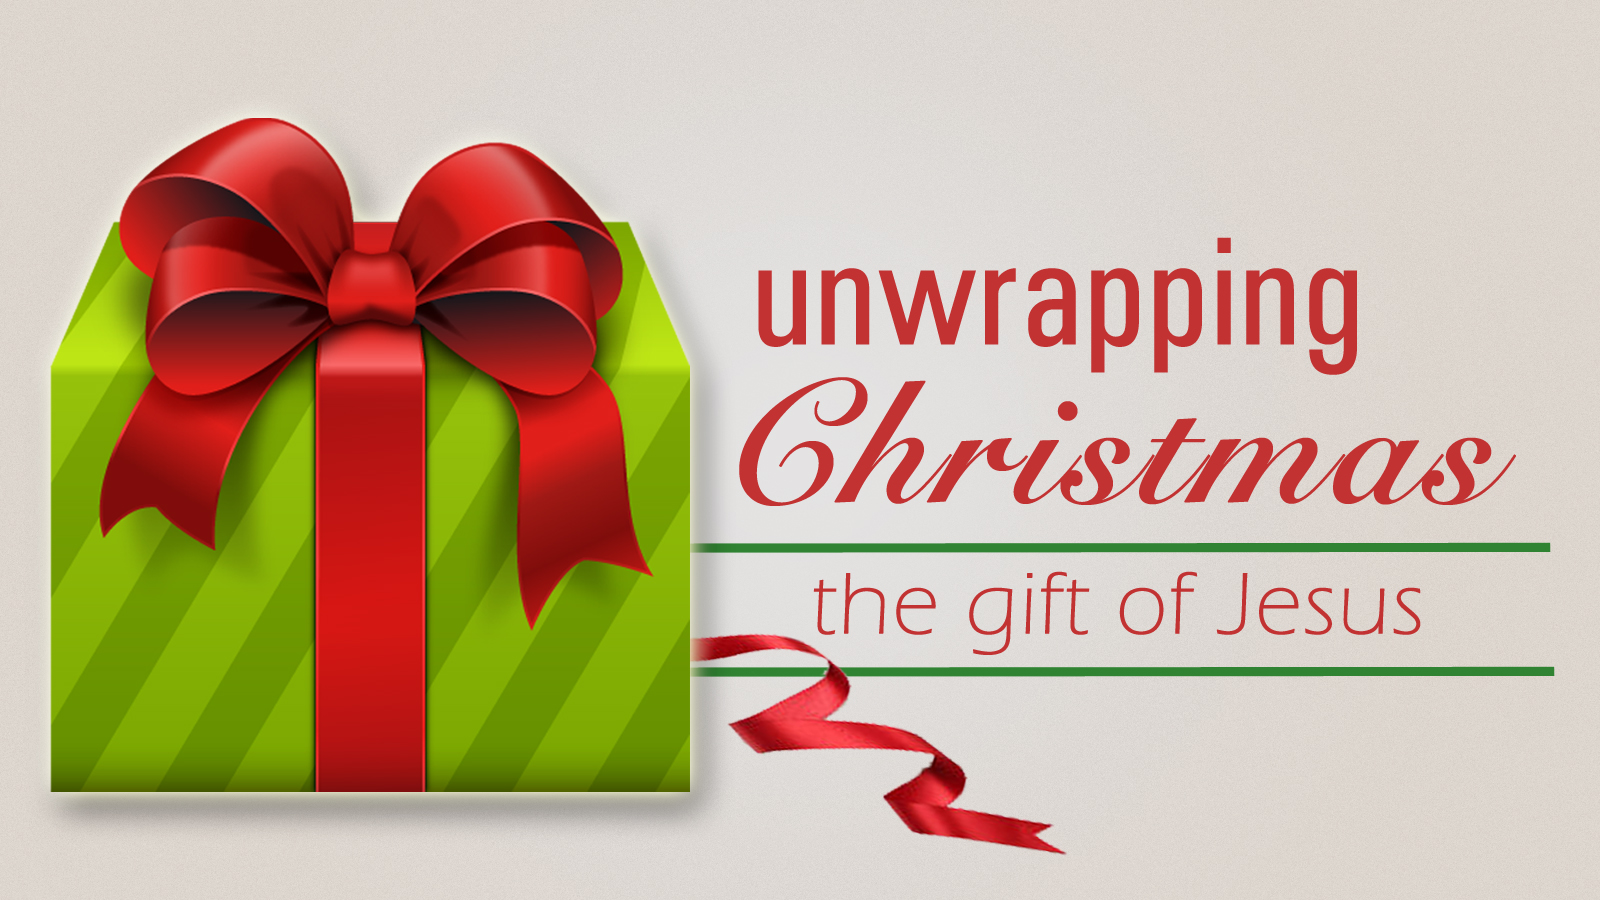 unwrapping-christmas-gift-of-jesus